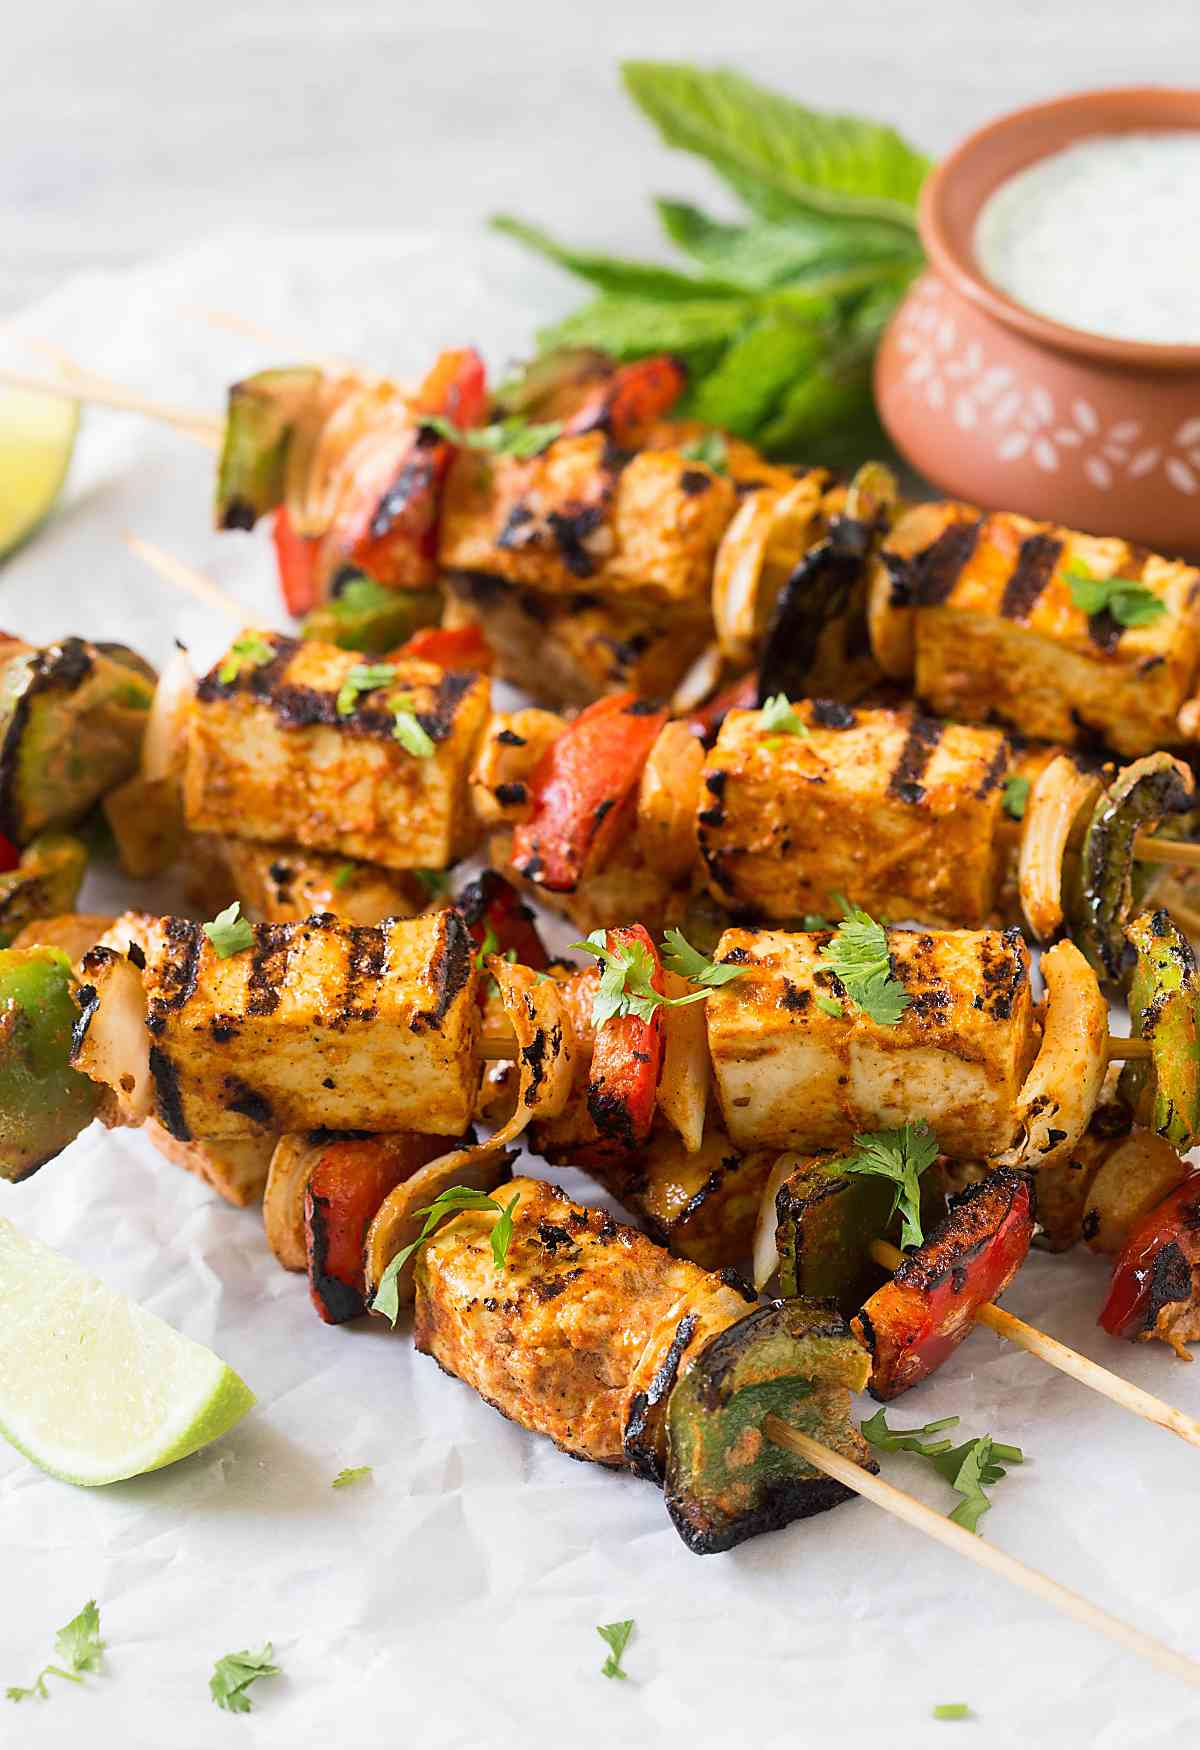 Grilled Tofu Tikka Skewers | Tofu Kebabs - Perfect for party appetizers or making Indian tofu tikka masala.